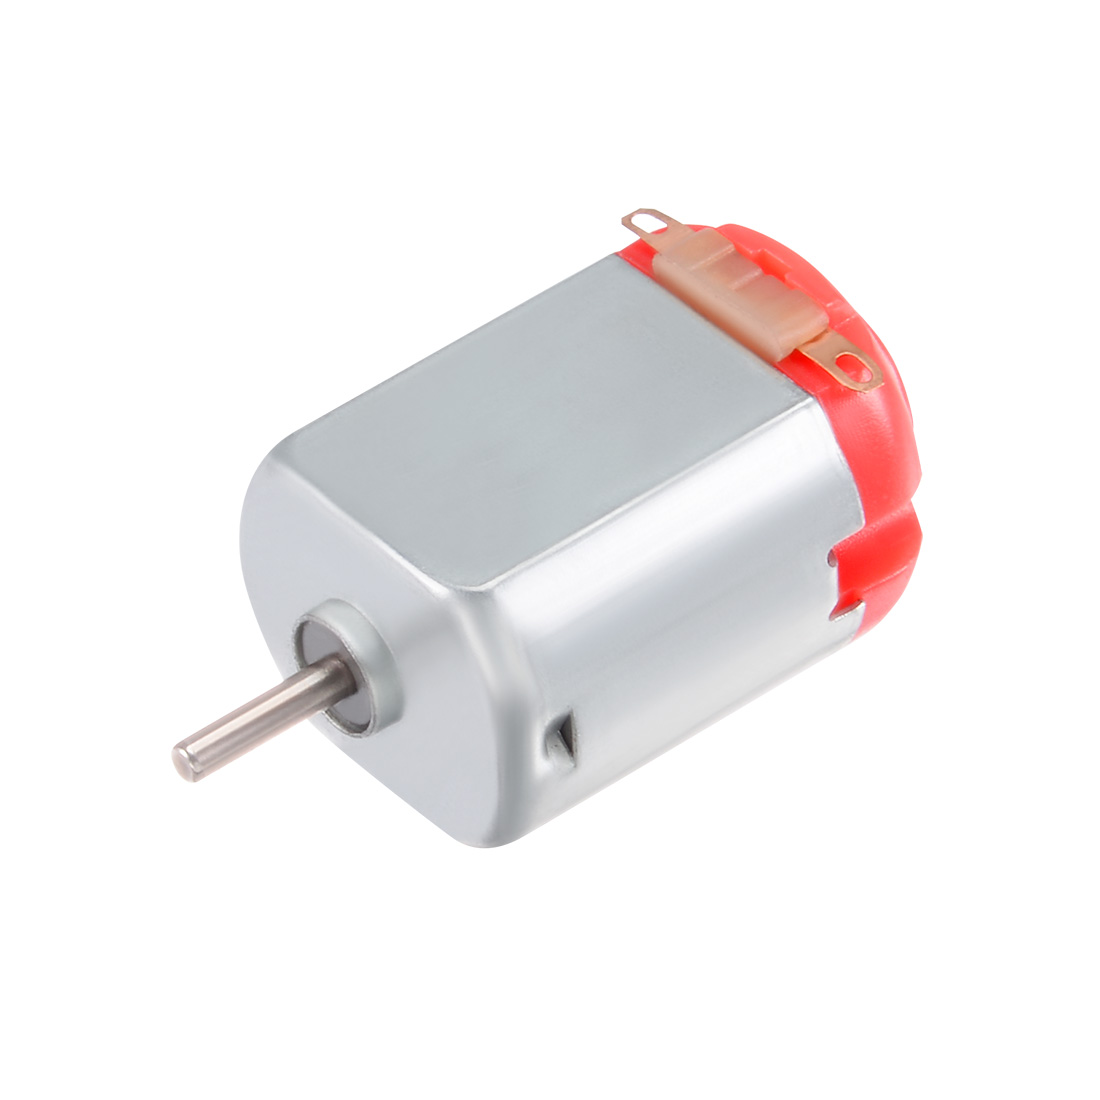 Small Motor DC 3V 8100RPM High Speed Motor for DIY Hobby Toy Cars Remote Control